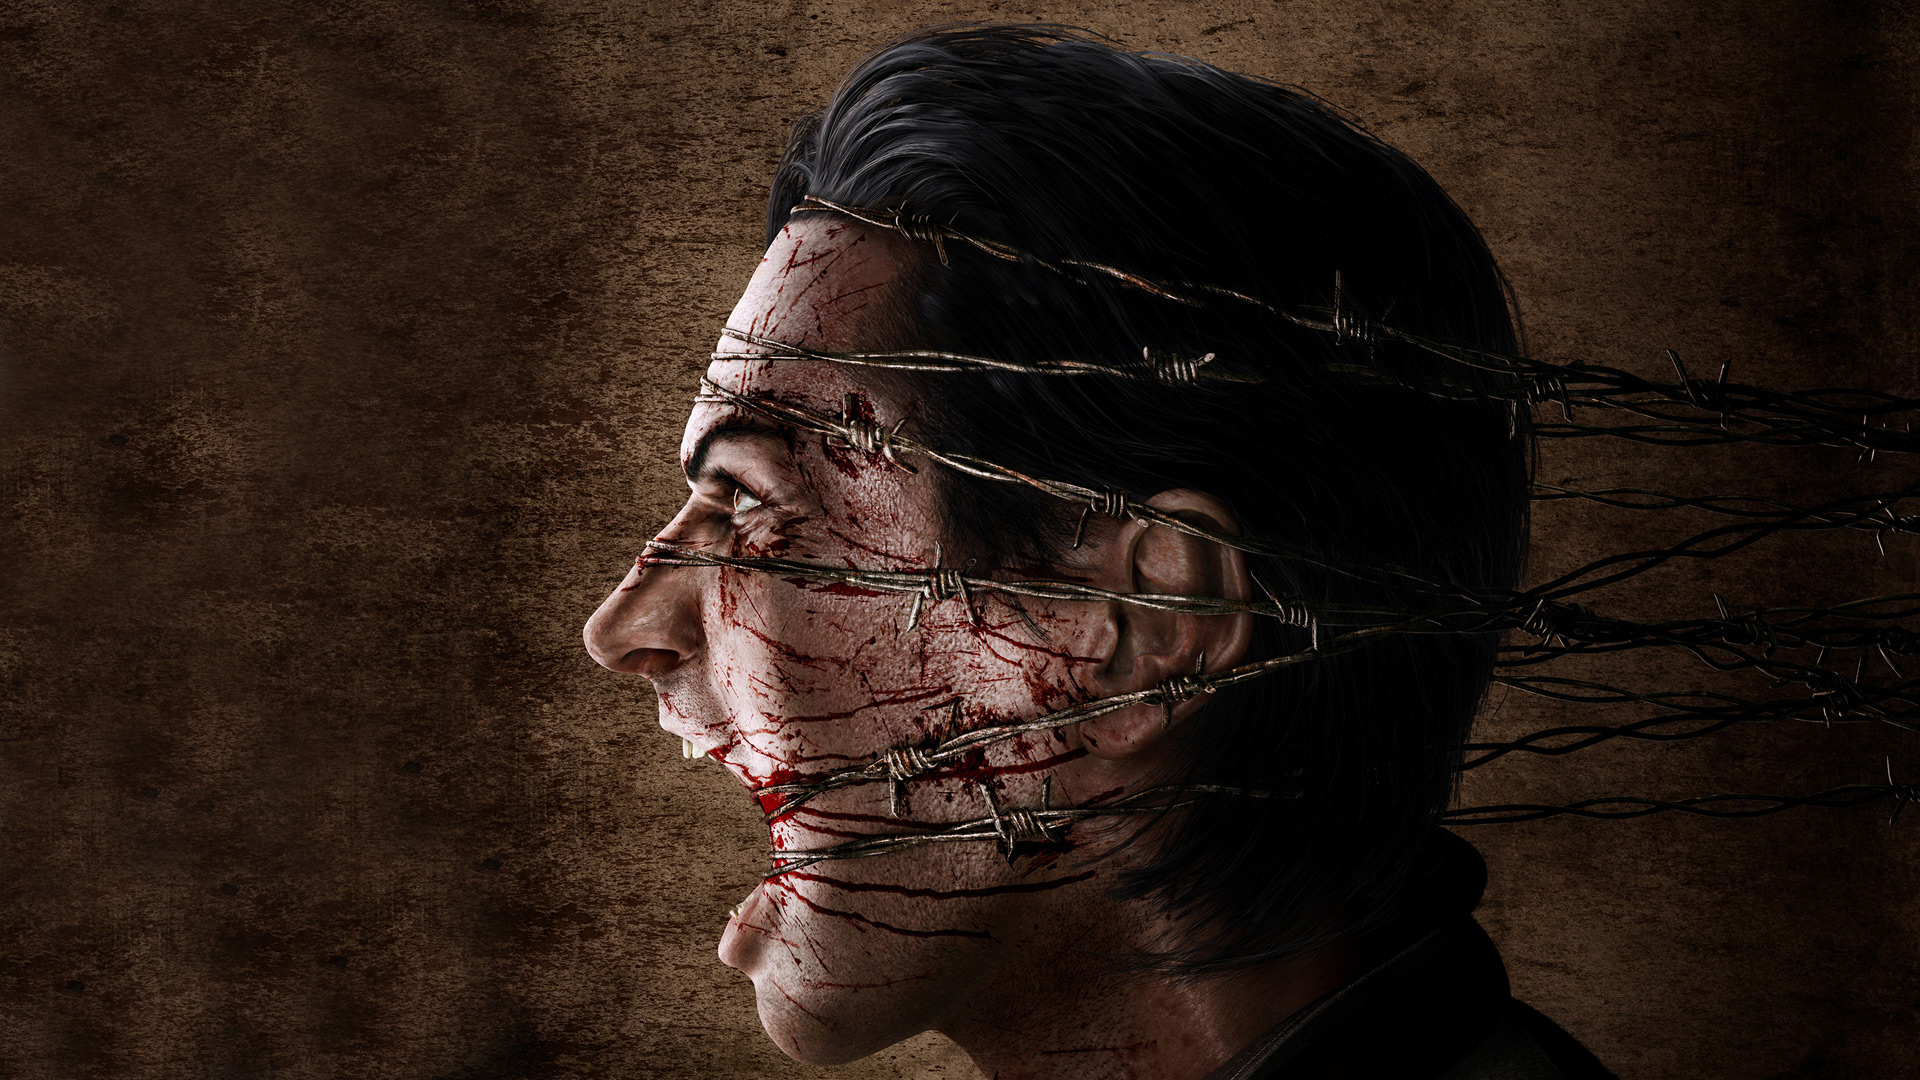 The Evil Within Wallpapers Or Desktop Backgrounds: The Evil Within Full HD Wallpaper And Background Image